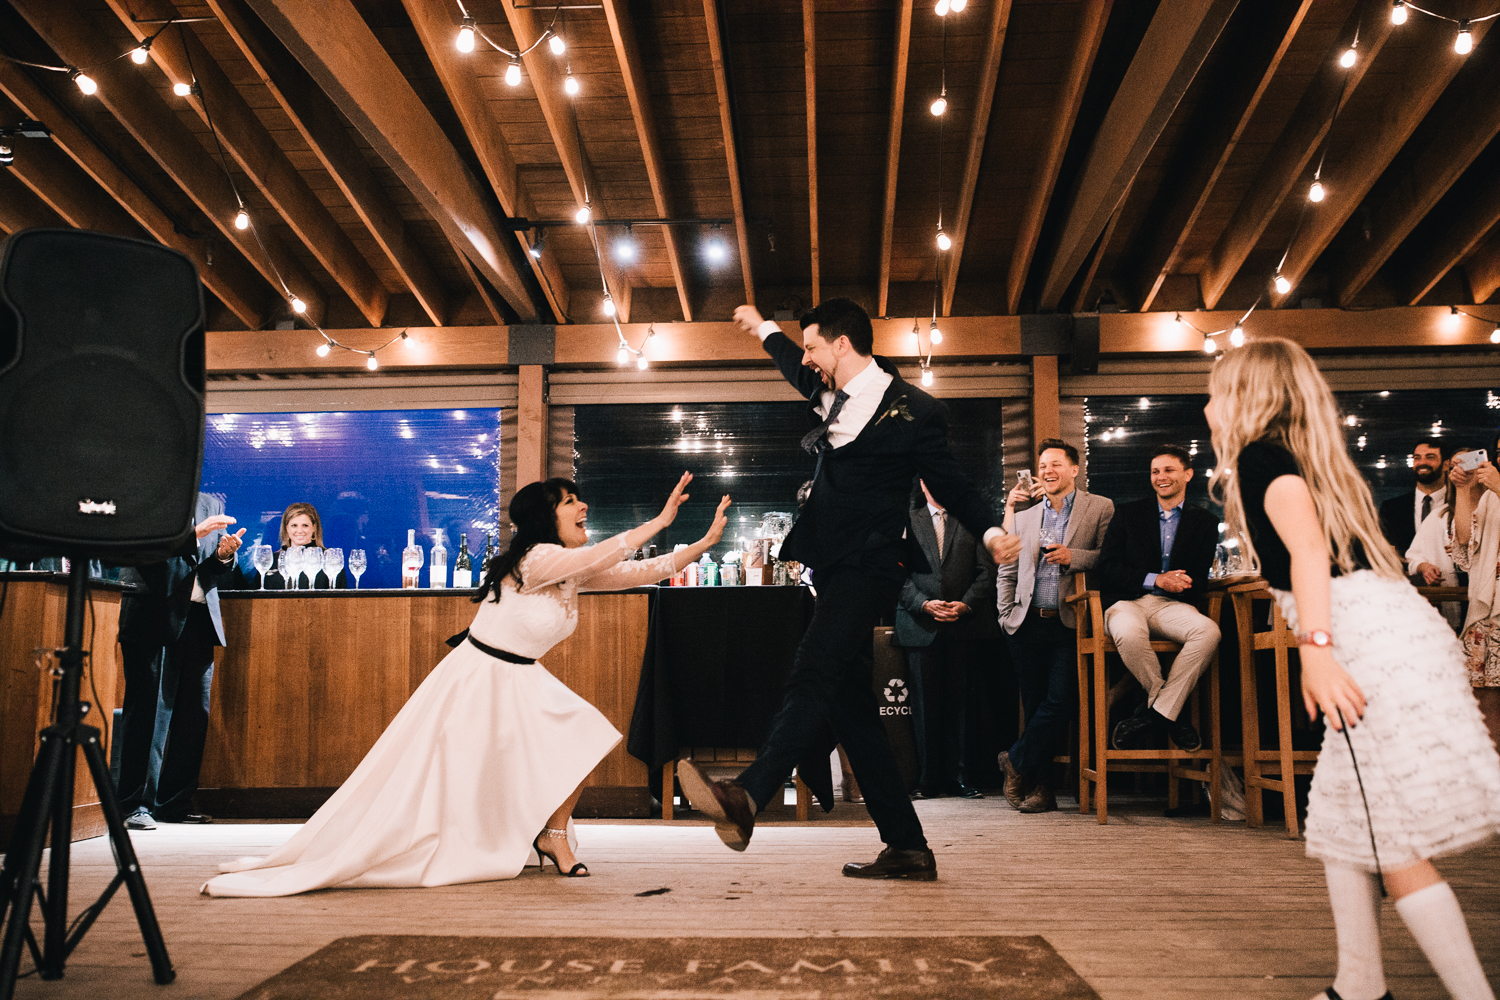 2019_05_ 182019.05.19 Lisa + Eddie South Bay Wedding Blog Photos Edited For Web 0146.jpg